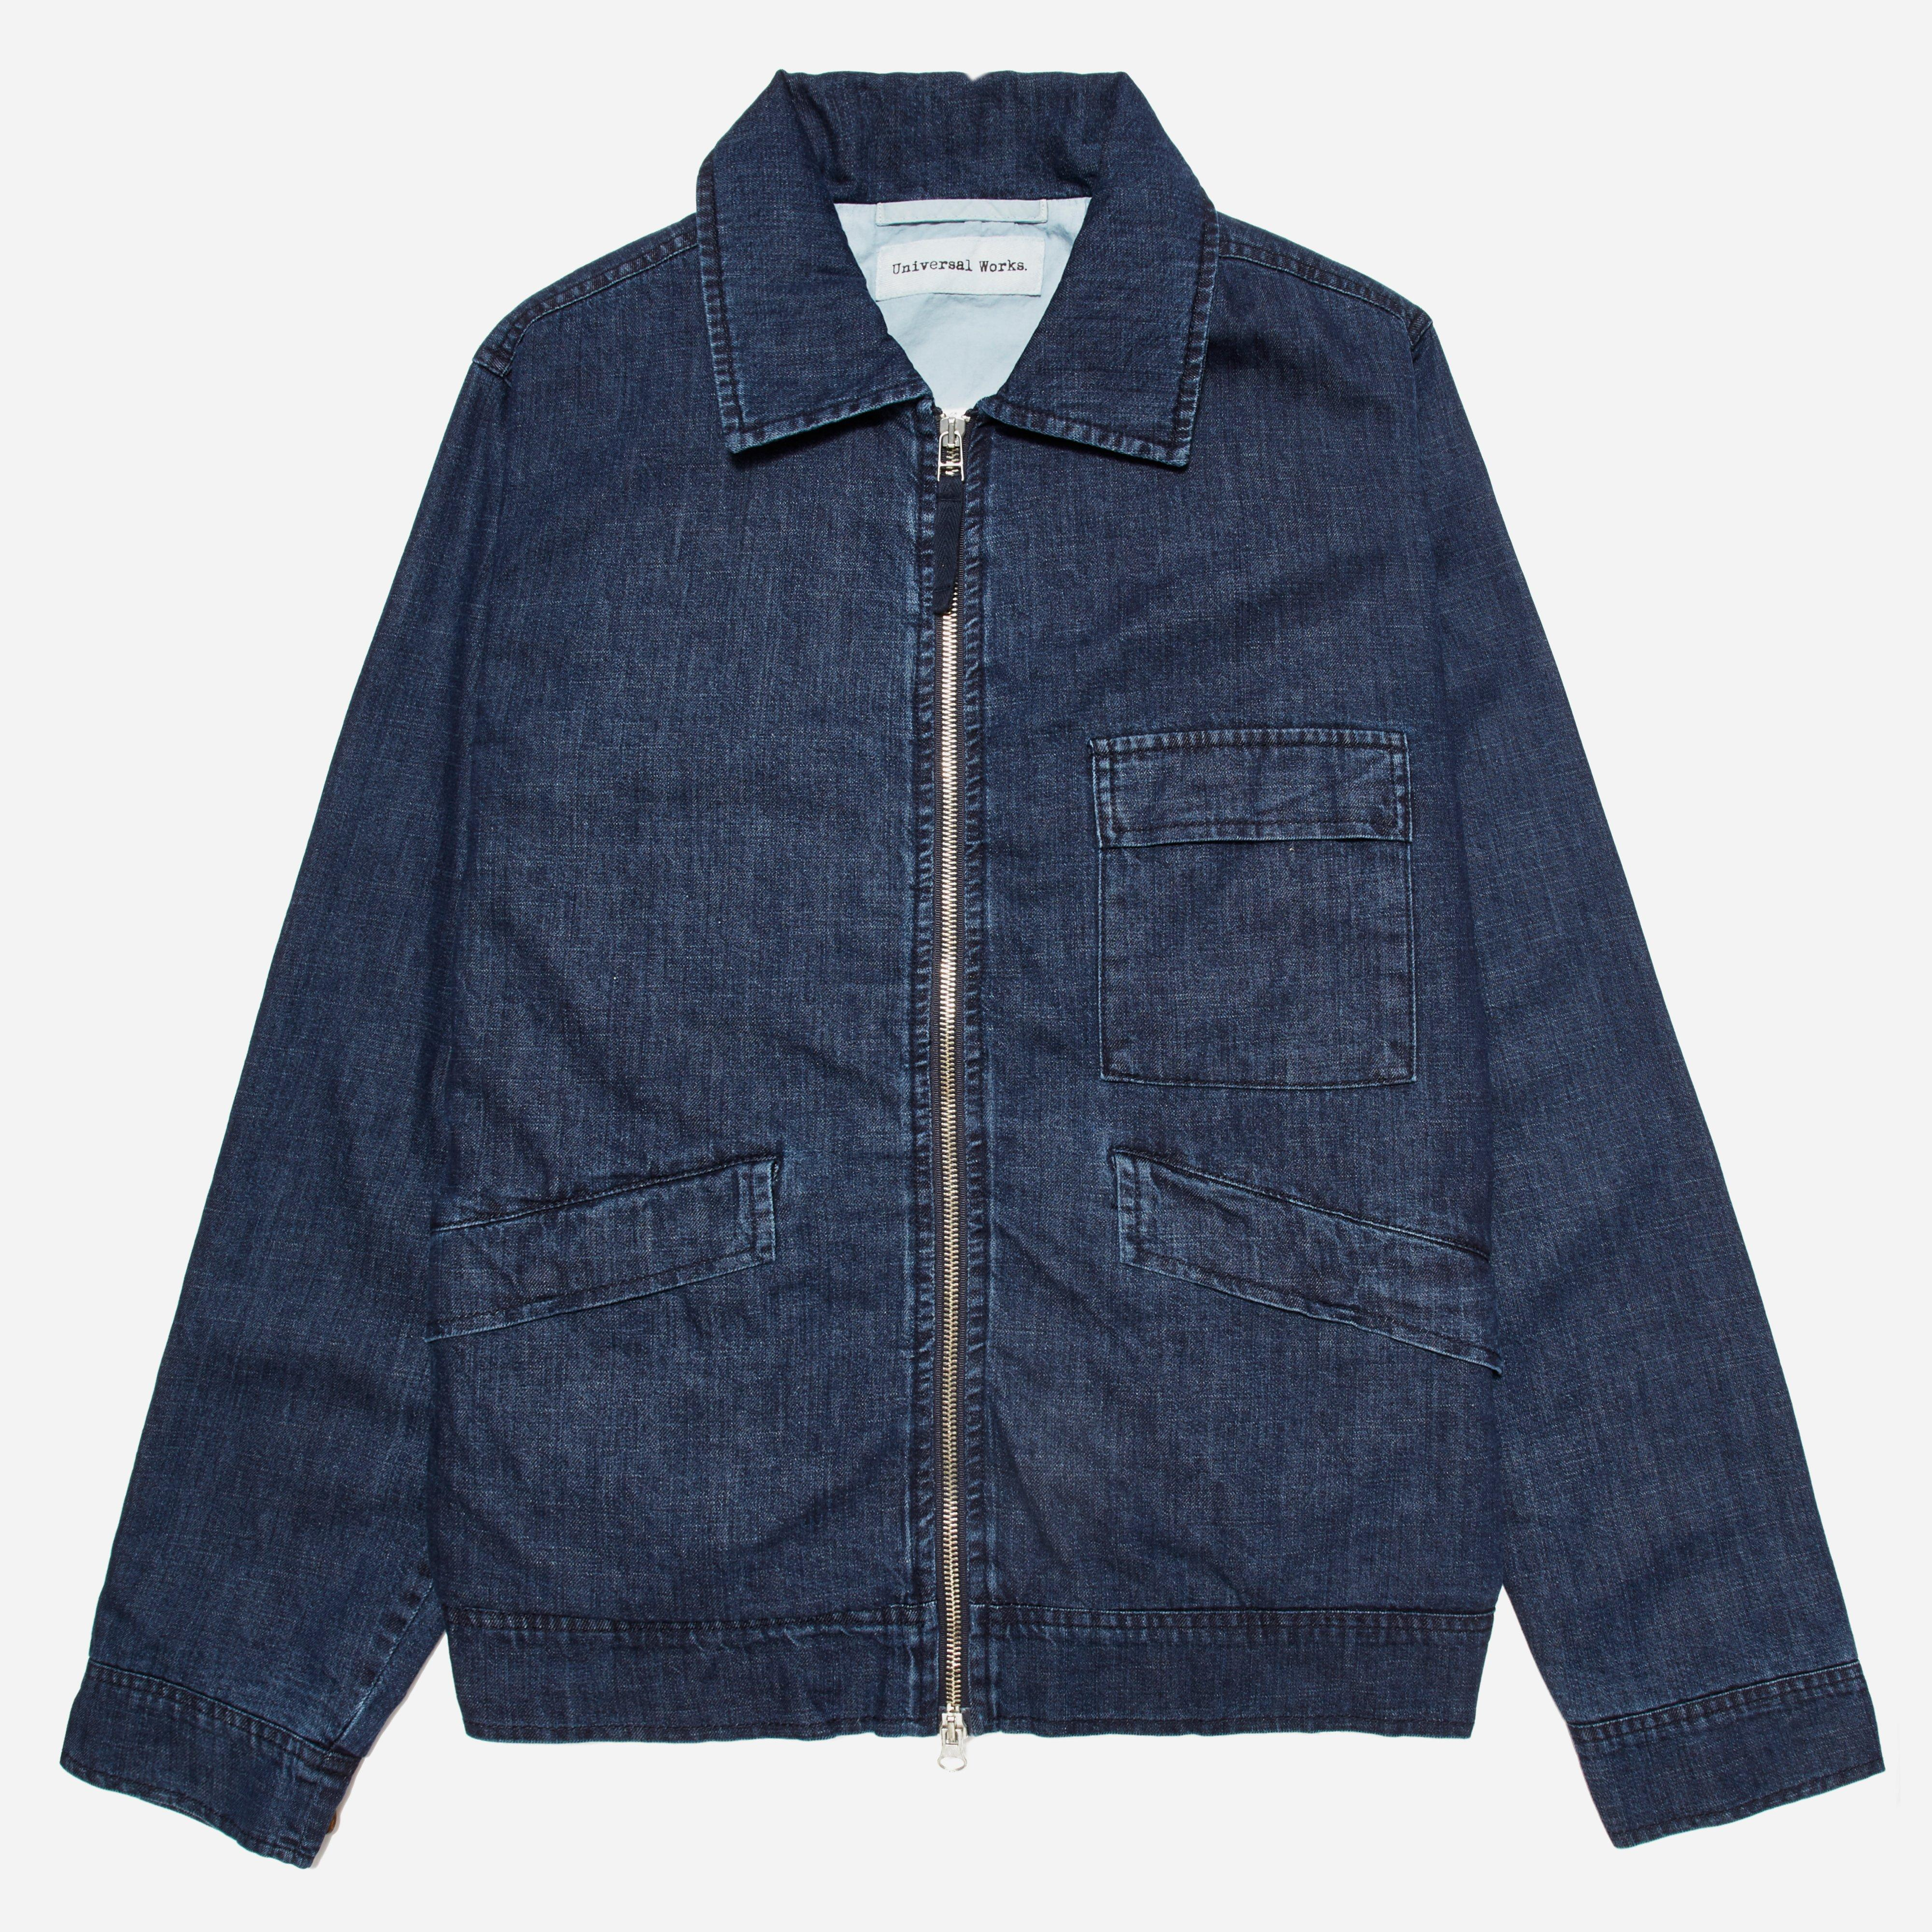 Universal Works Fall Denim Battle Jacket